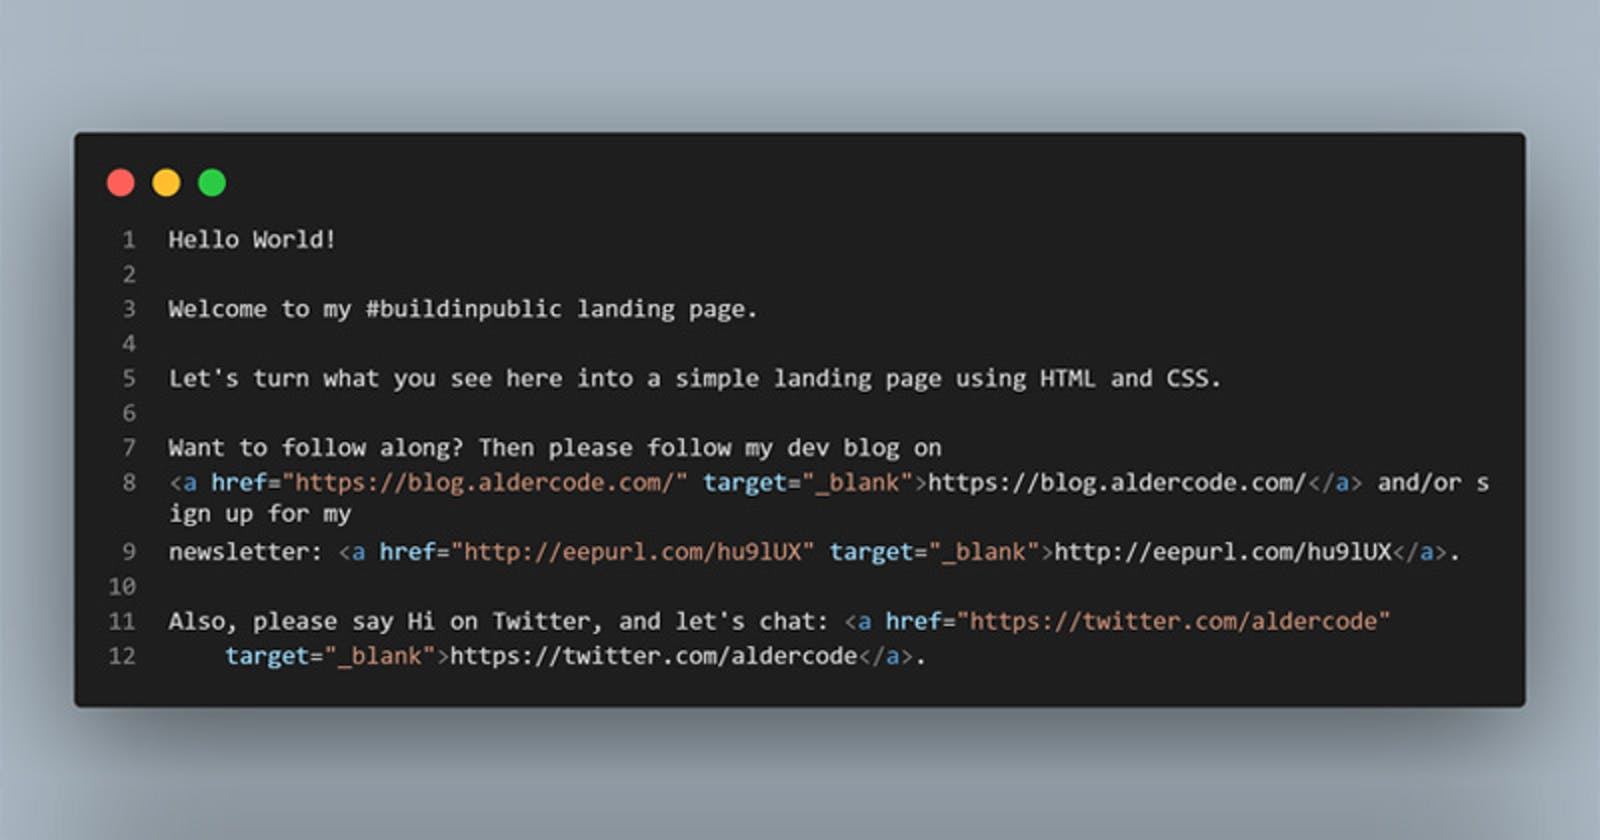 Building a landing page with HTML & CSS - part 1